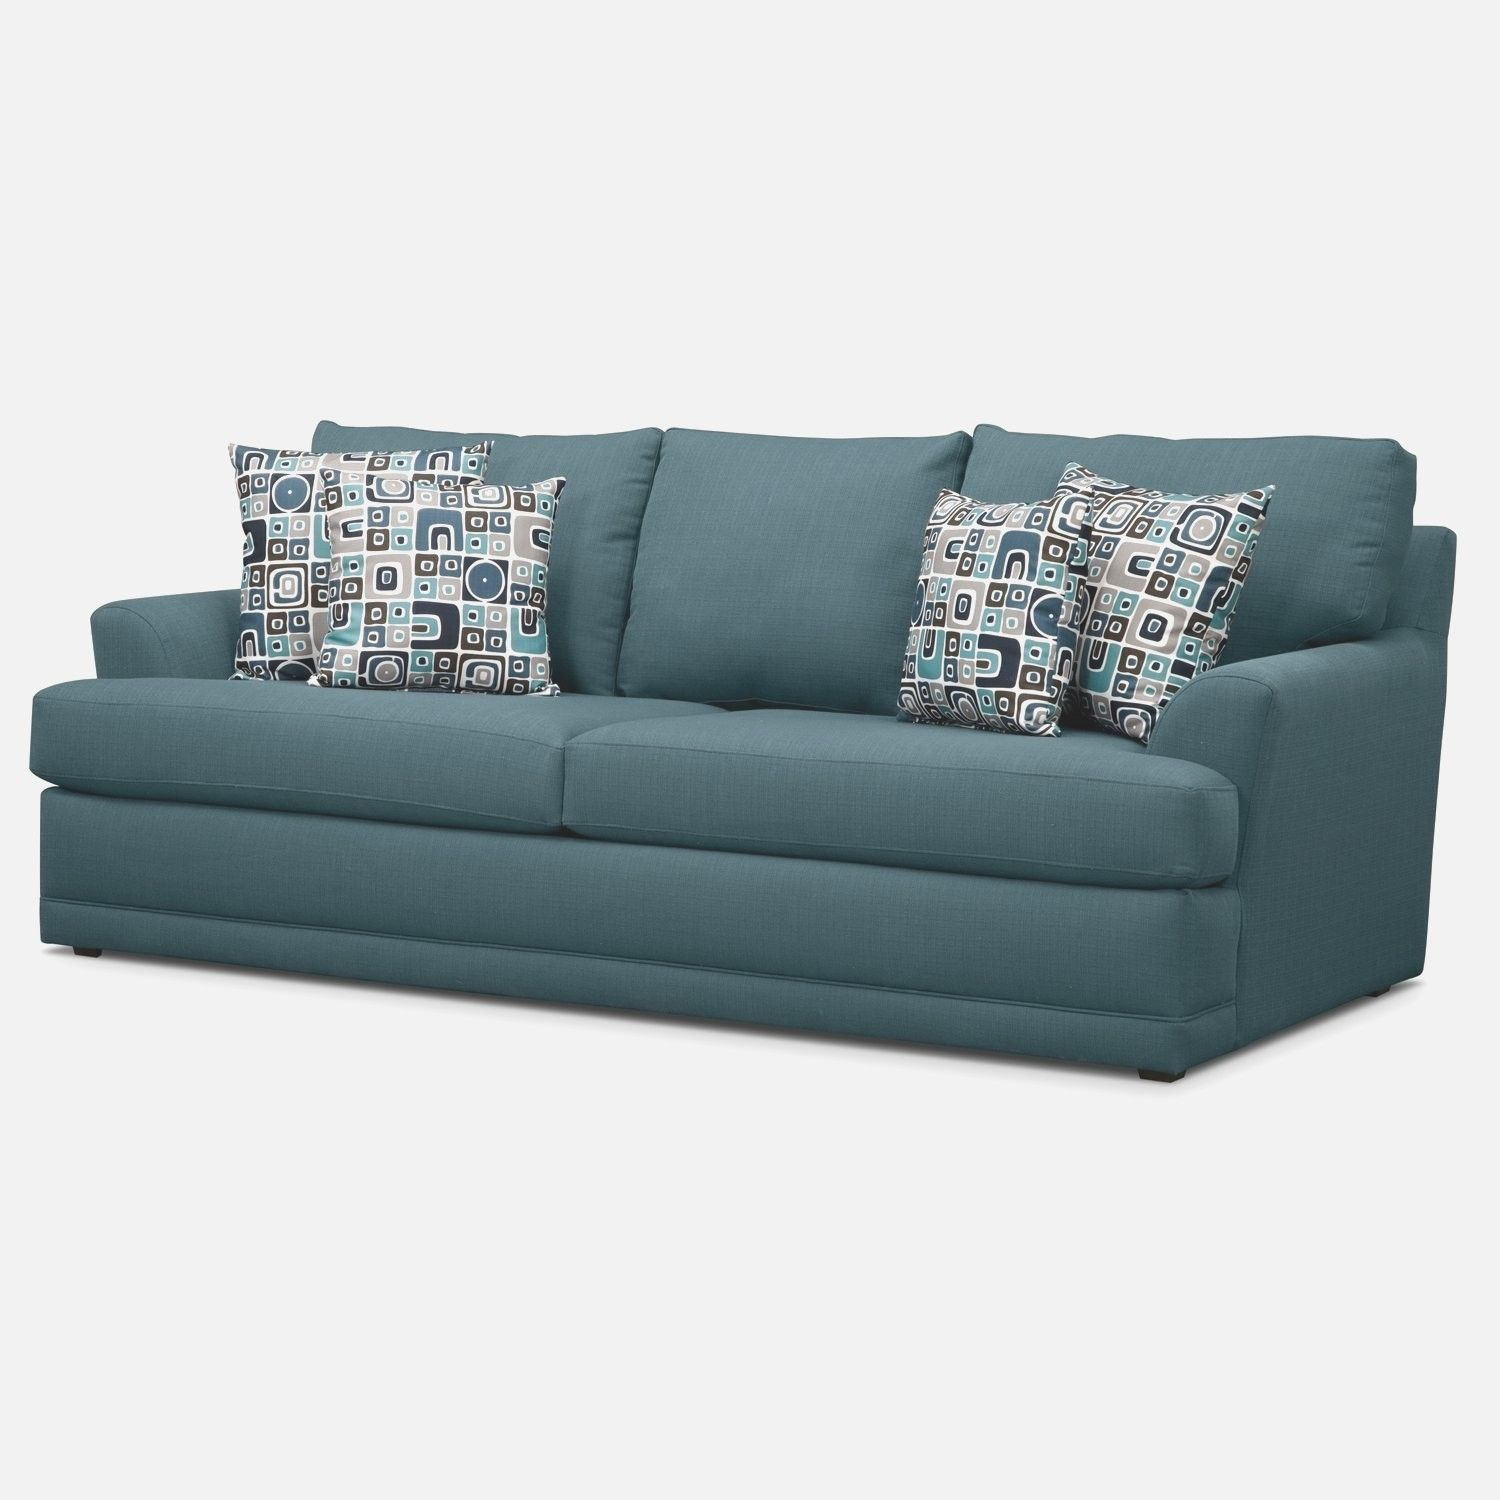 Bobs Furniture Sleeper Sofa Bob S Review Queen